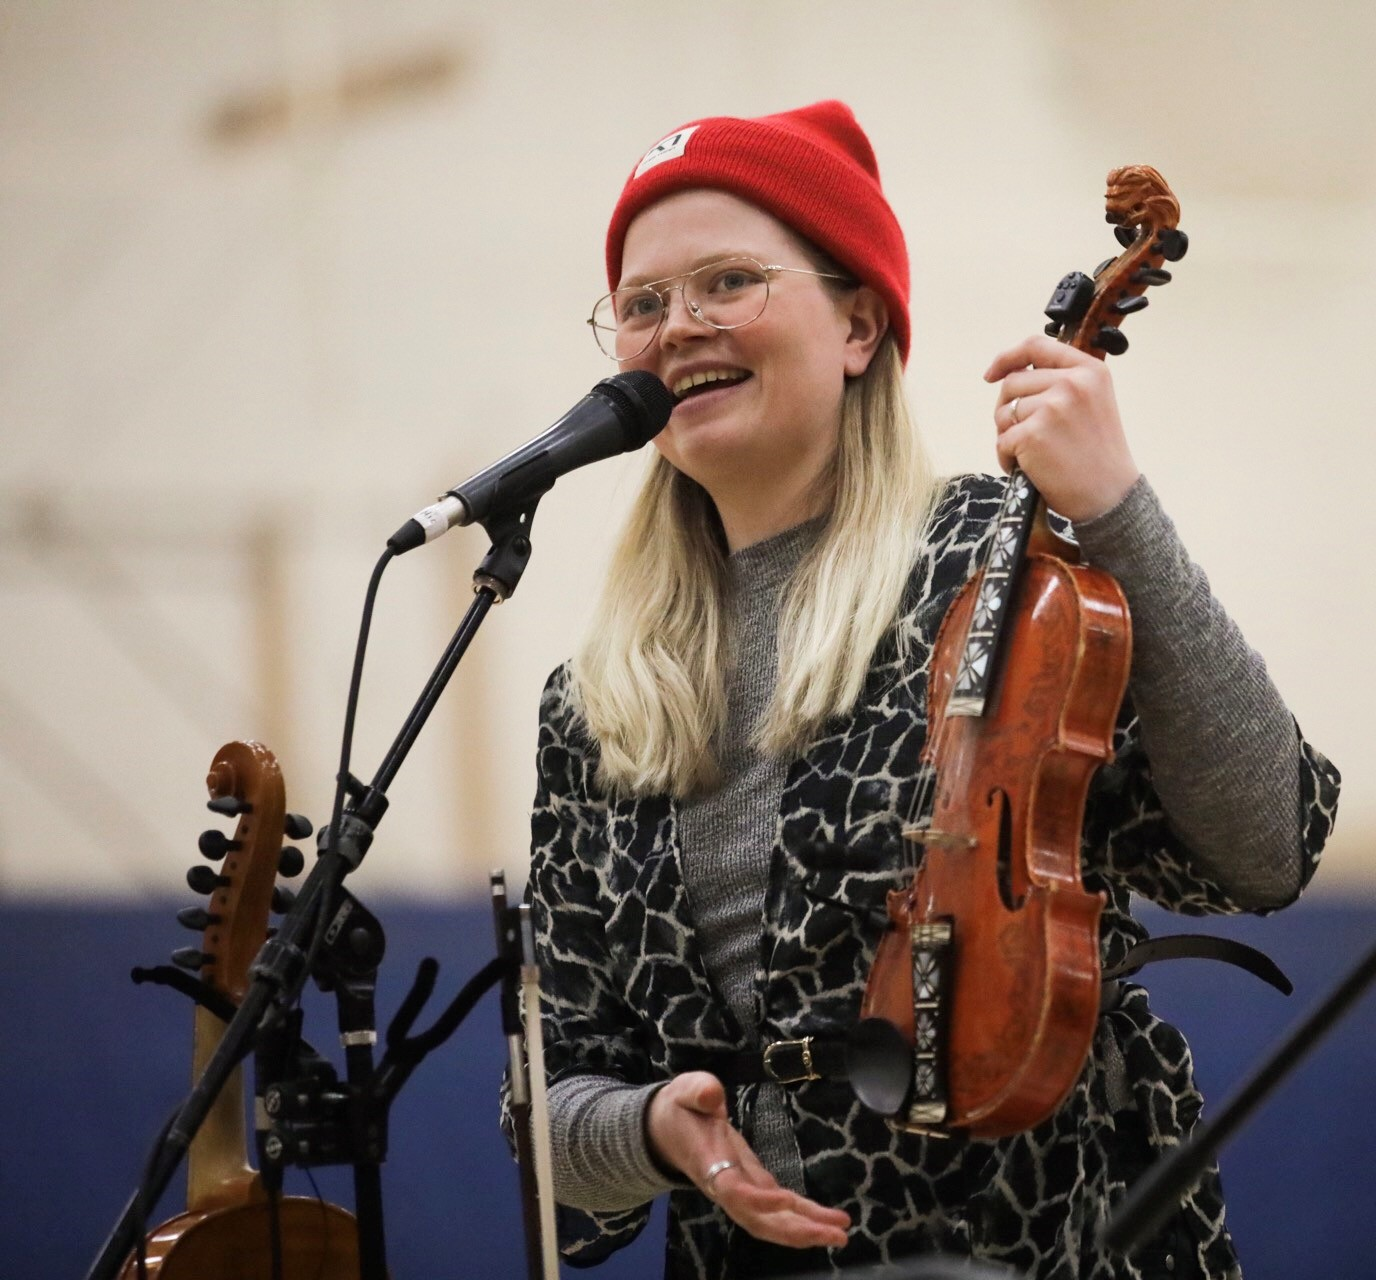 Guro Kvifte Nesheim explains the Hardanger Fiddle